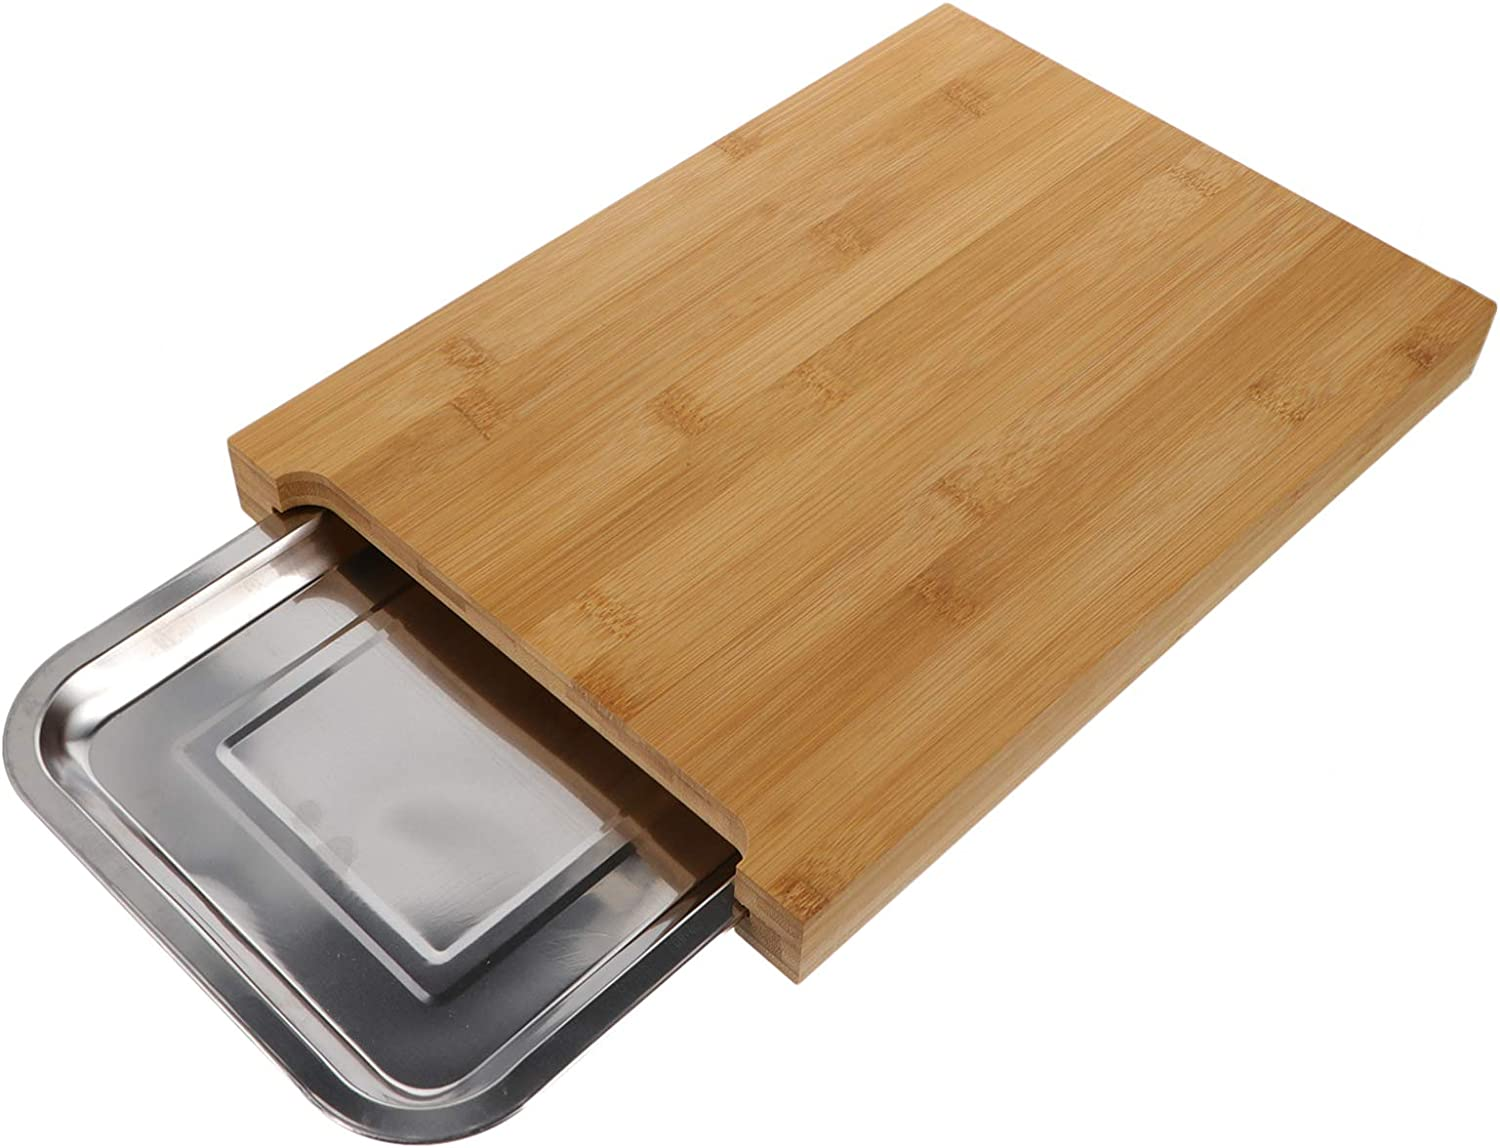 Hemoton Bamboo Cutting Board with Max 59% OFF Drawer Boar Some reservation Chopping Removable